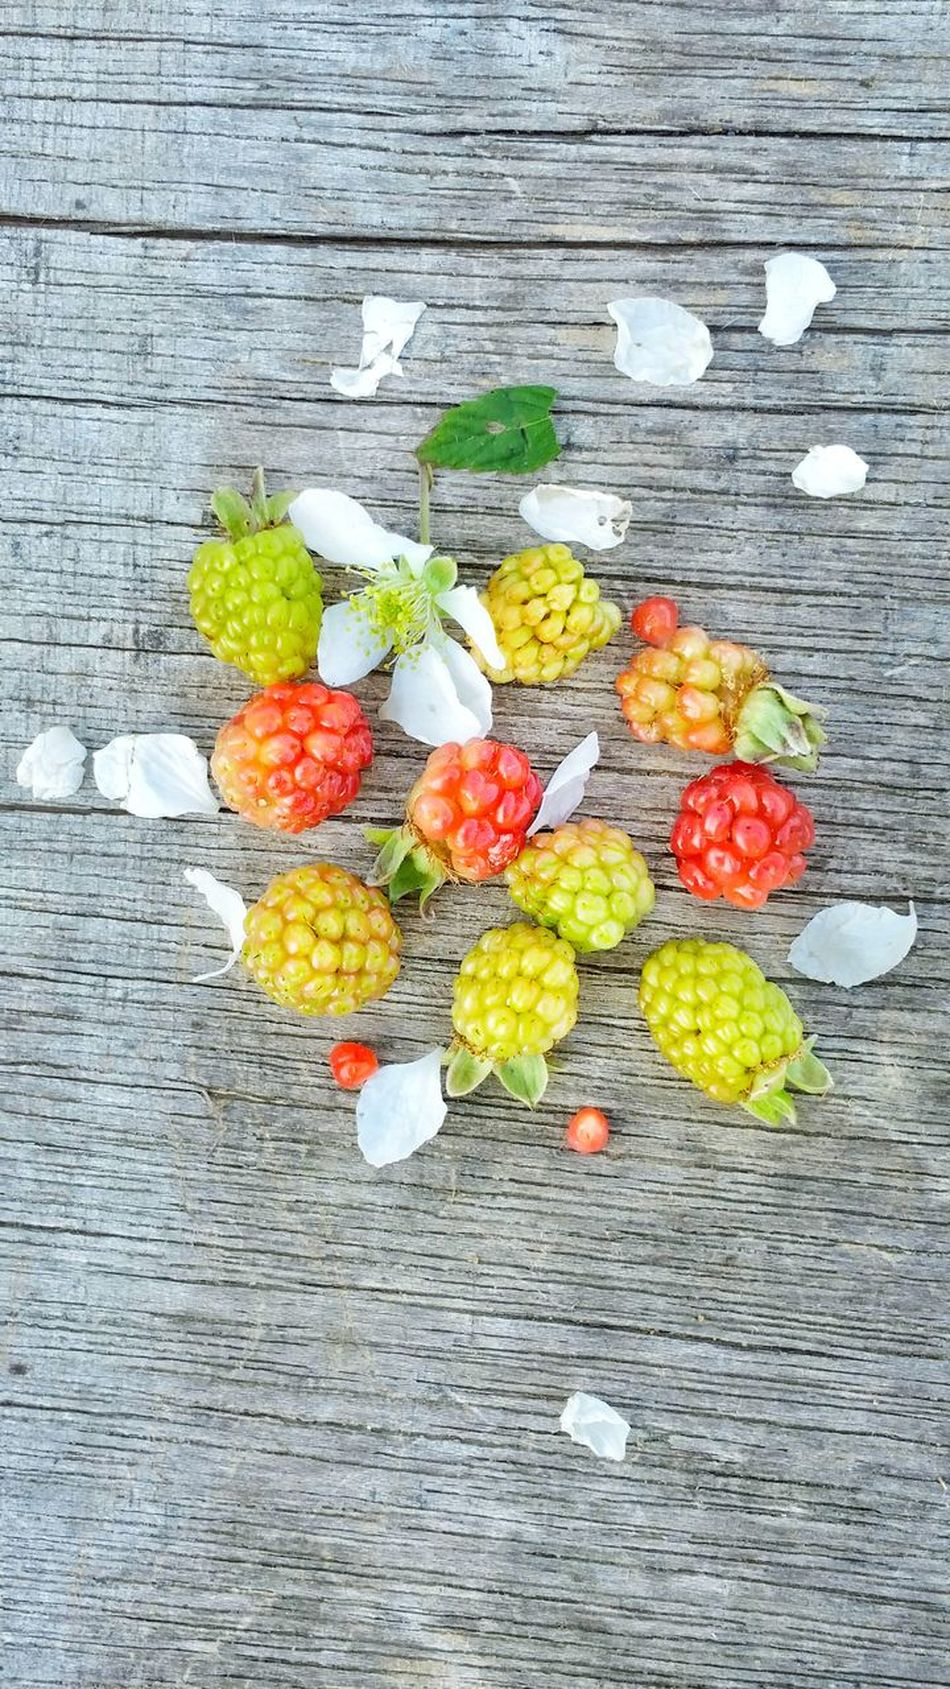 High Angle View Multi Colored Food Wood - Material Freshness Variation Ready-to-eat Outdoors Day Group Dew Berries Wild Blackberries Wild Blackberry Backgrounds Close-up Weathered Wood Room For Copy Unripe Room For Text Wild Berries Healthy Eating Fruit Freshness Bunch